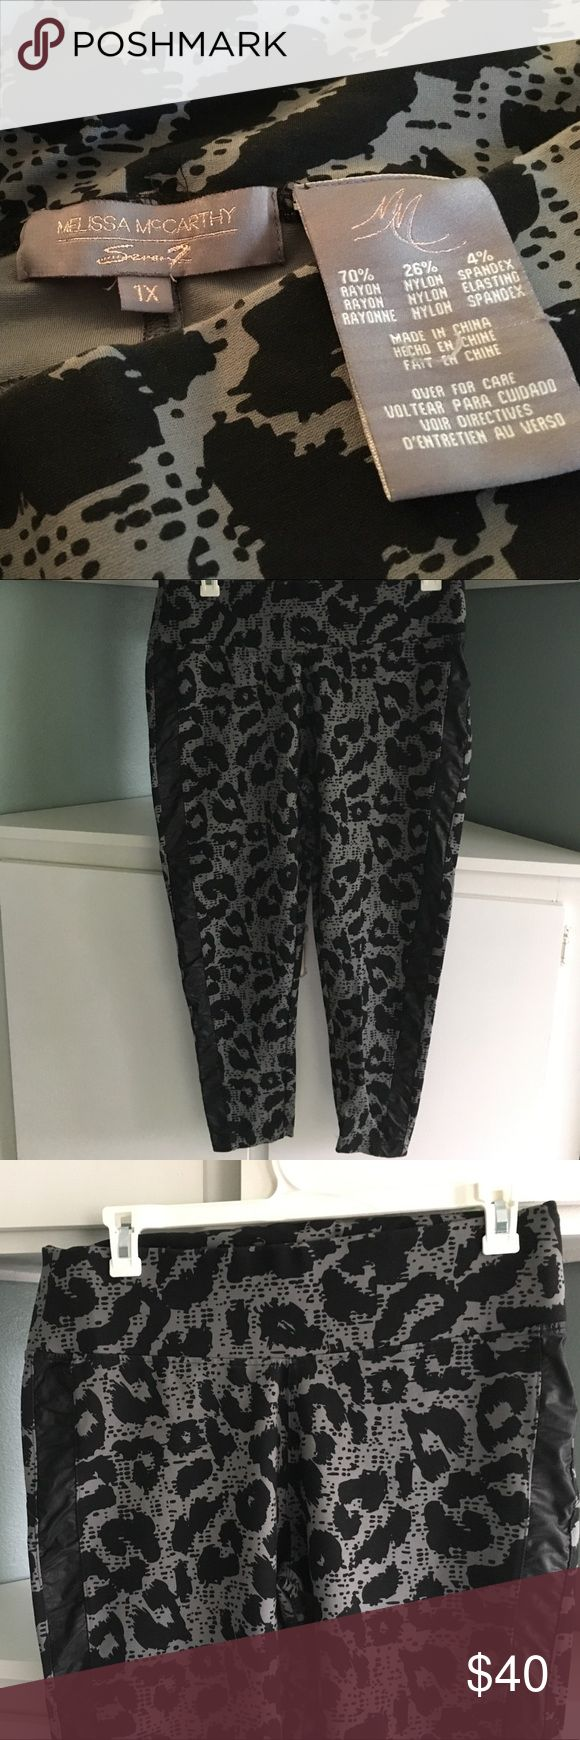 Melissa McCarthy by Seven 7 Leggings Awesome black and grey leopard spotted leggings. Leather looking strips down the side of each leg. These are a heavier material made really well. The waist has a thick band to make you look great! The back is designed to shape you nicely. NWOT bought them for my daughter and never returned. (She didn't like the band at the waist). Melissa McCarthy Pants Leggings